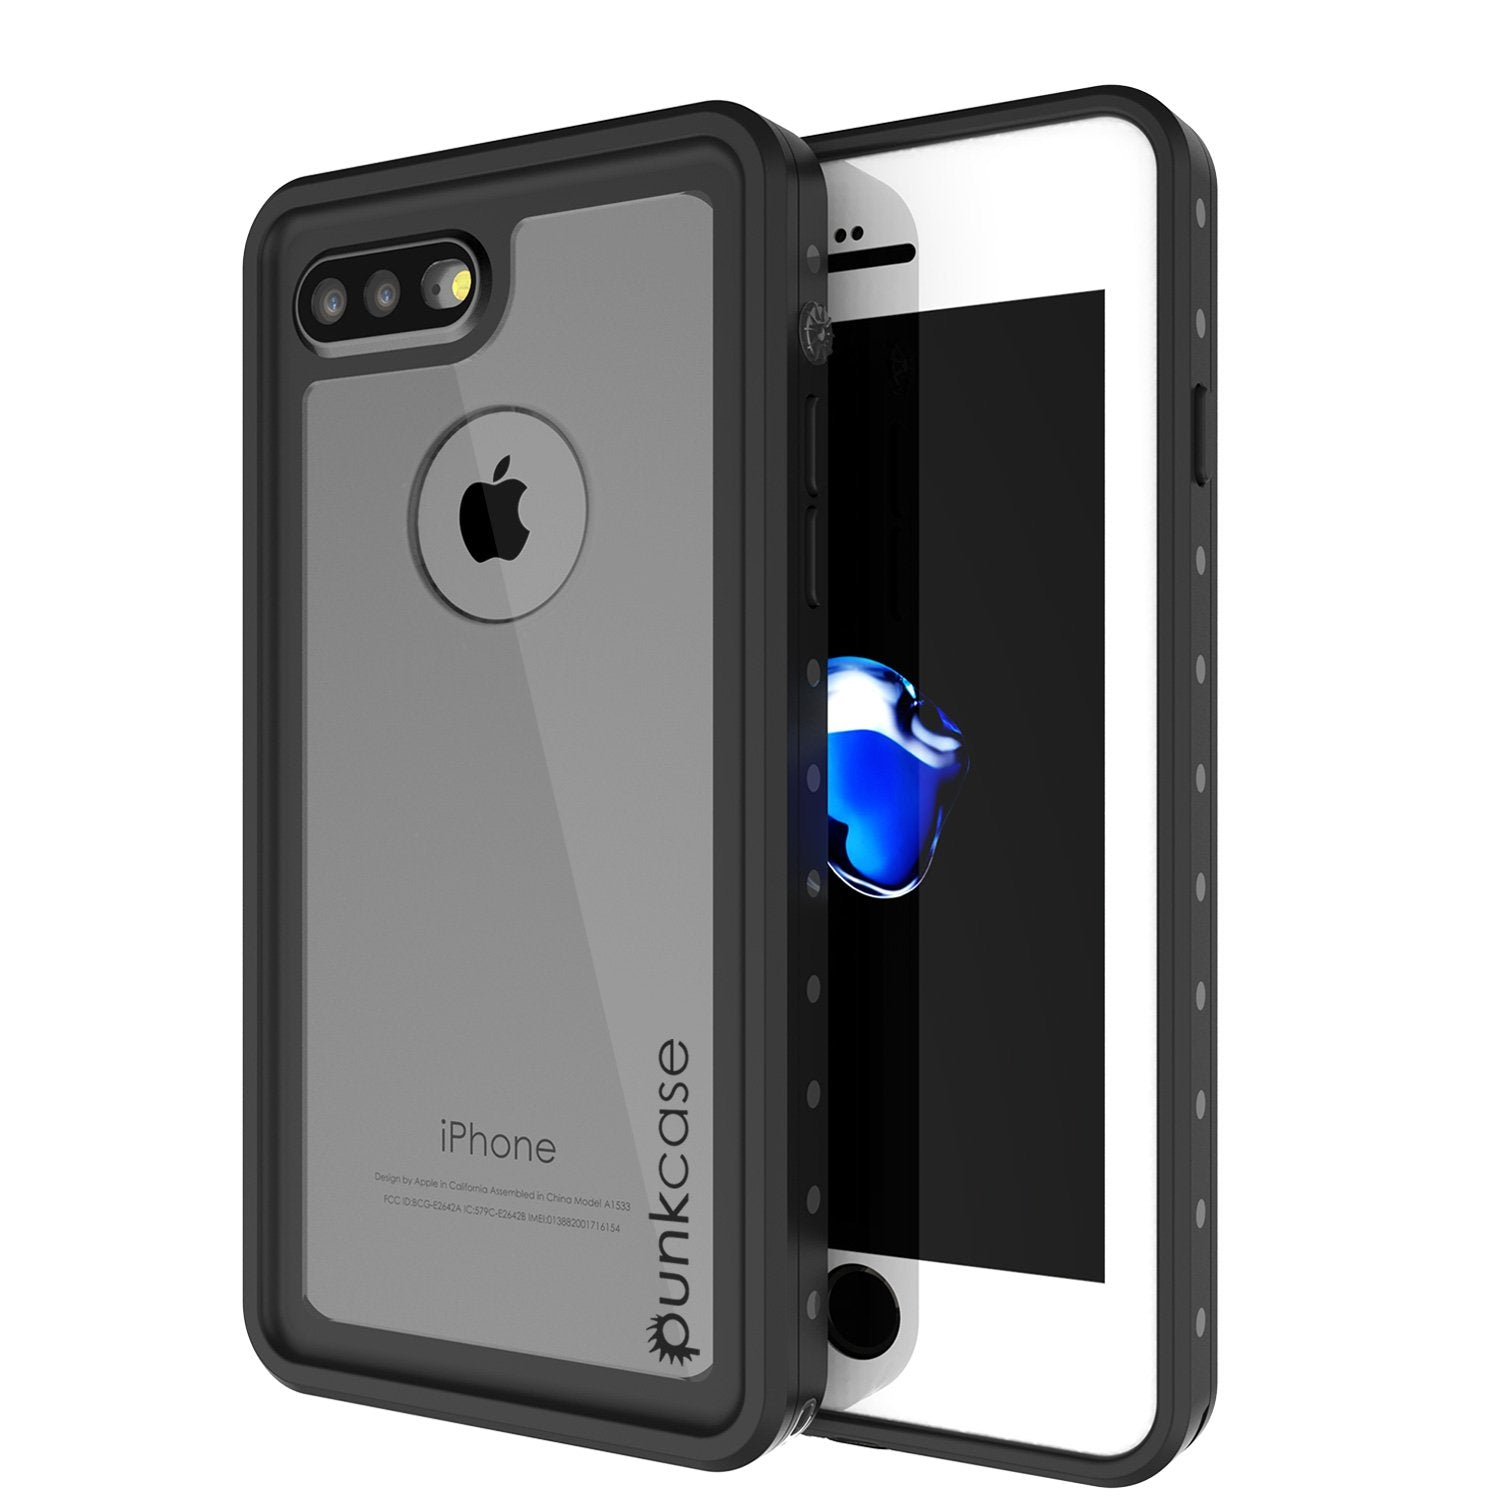 iPhone 8+ Plus Waterproof IP68 Case, Punkcase [Clear] [StudStar Series] [Slim Fit] [Dirtproof]